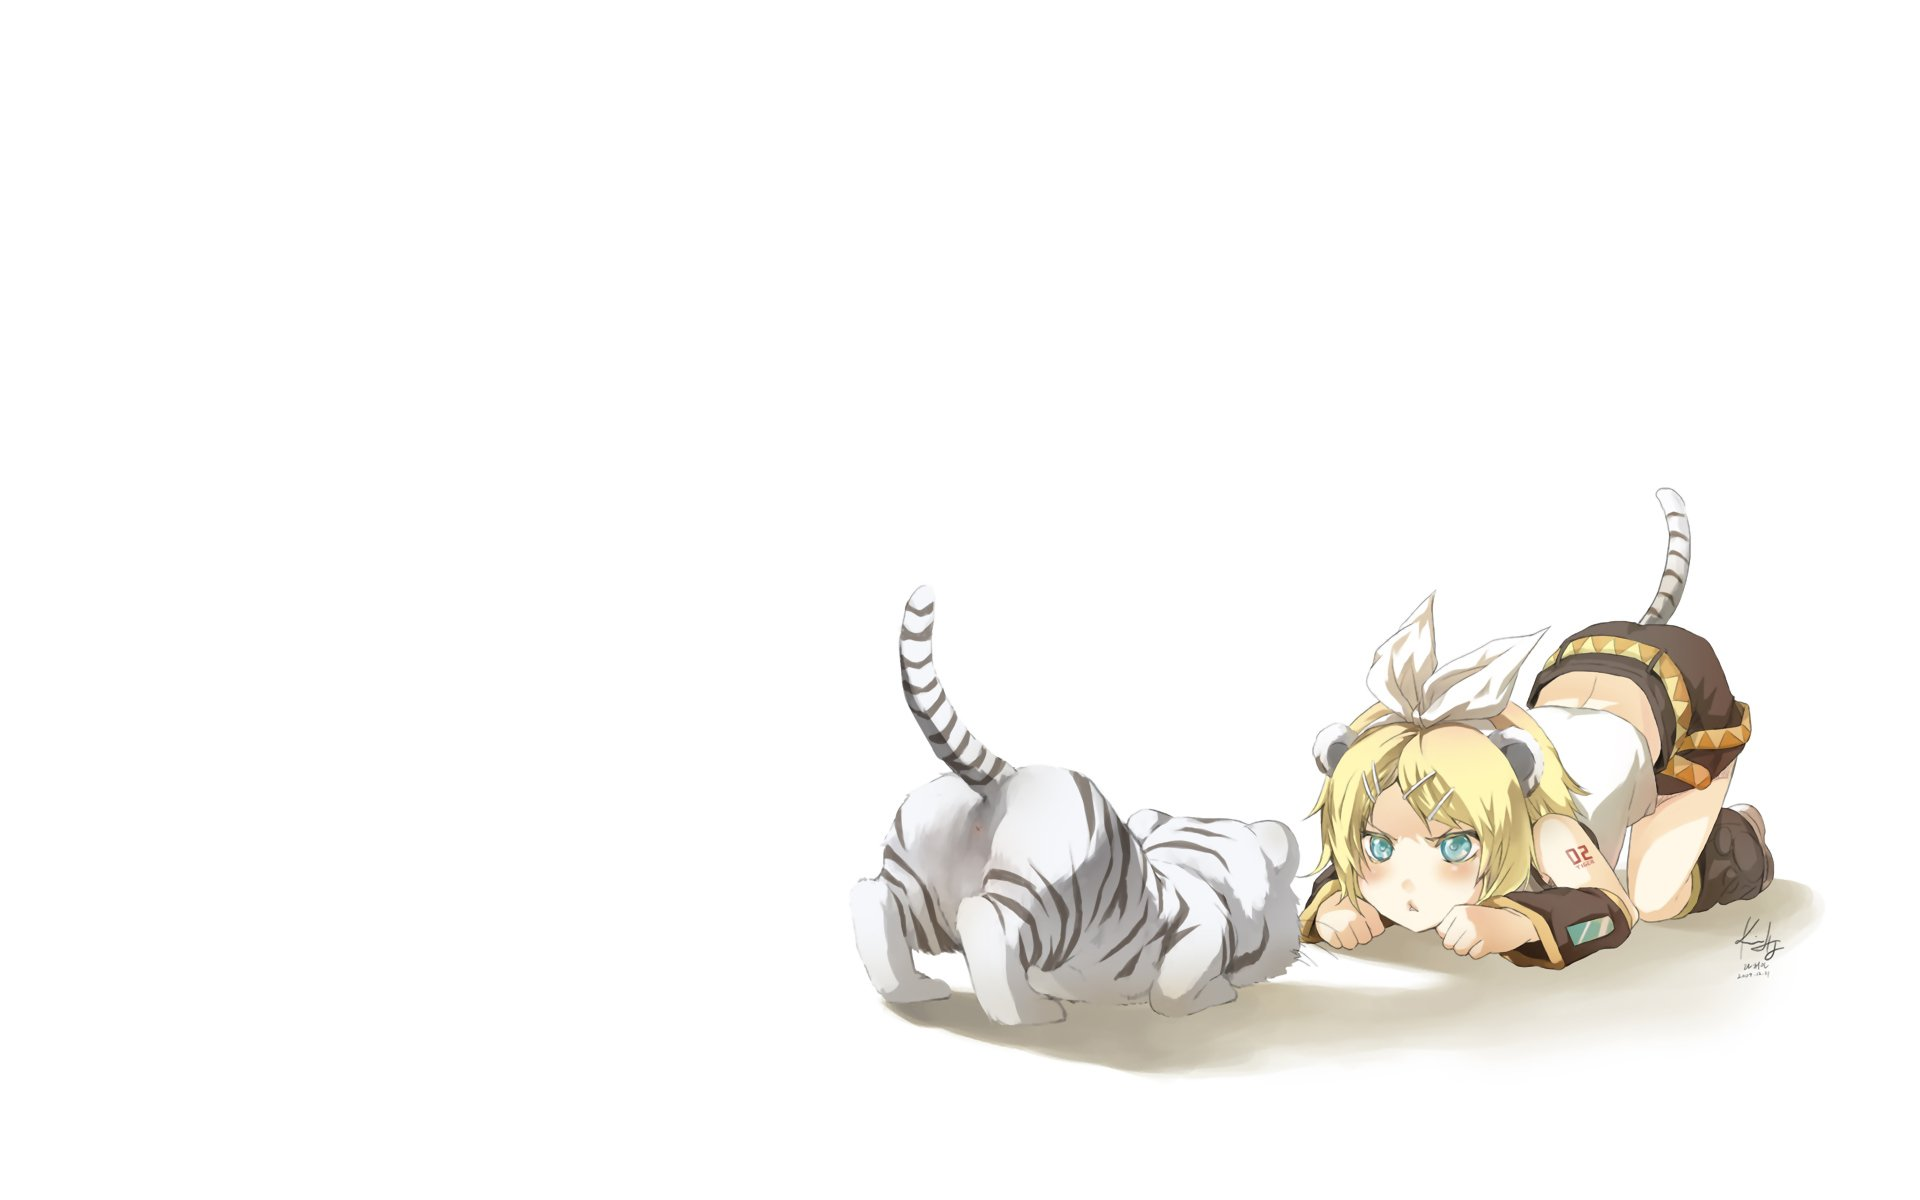 Anime - Vocaloid  Rin Kagamine Tiger Wallpaper